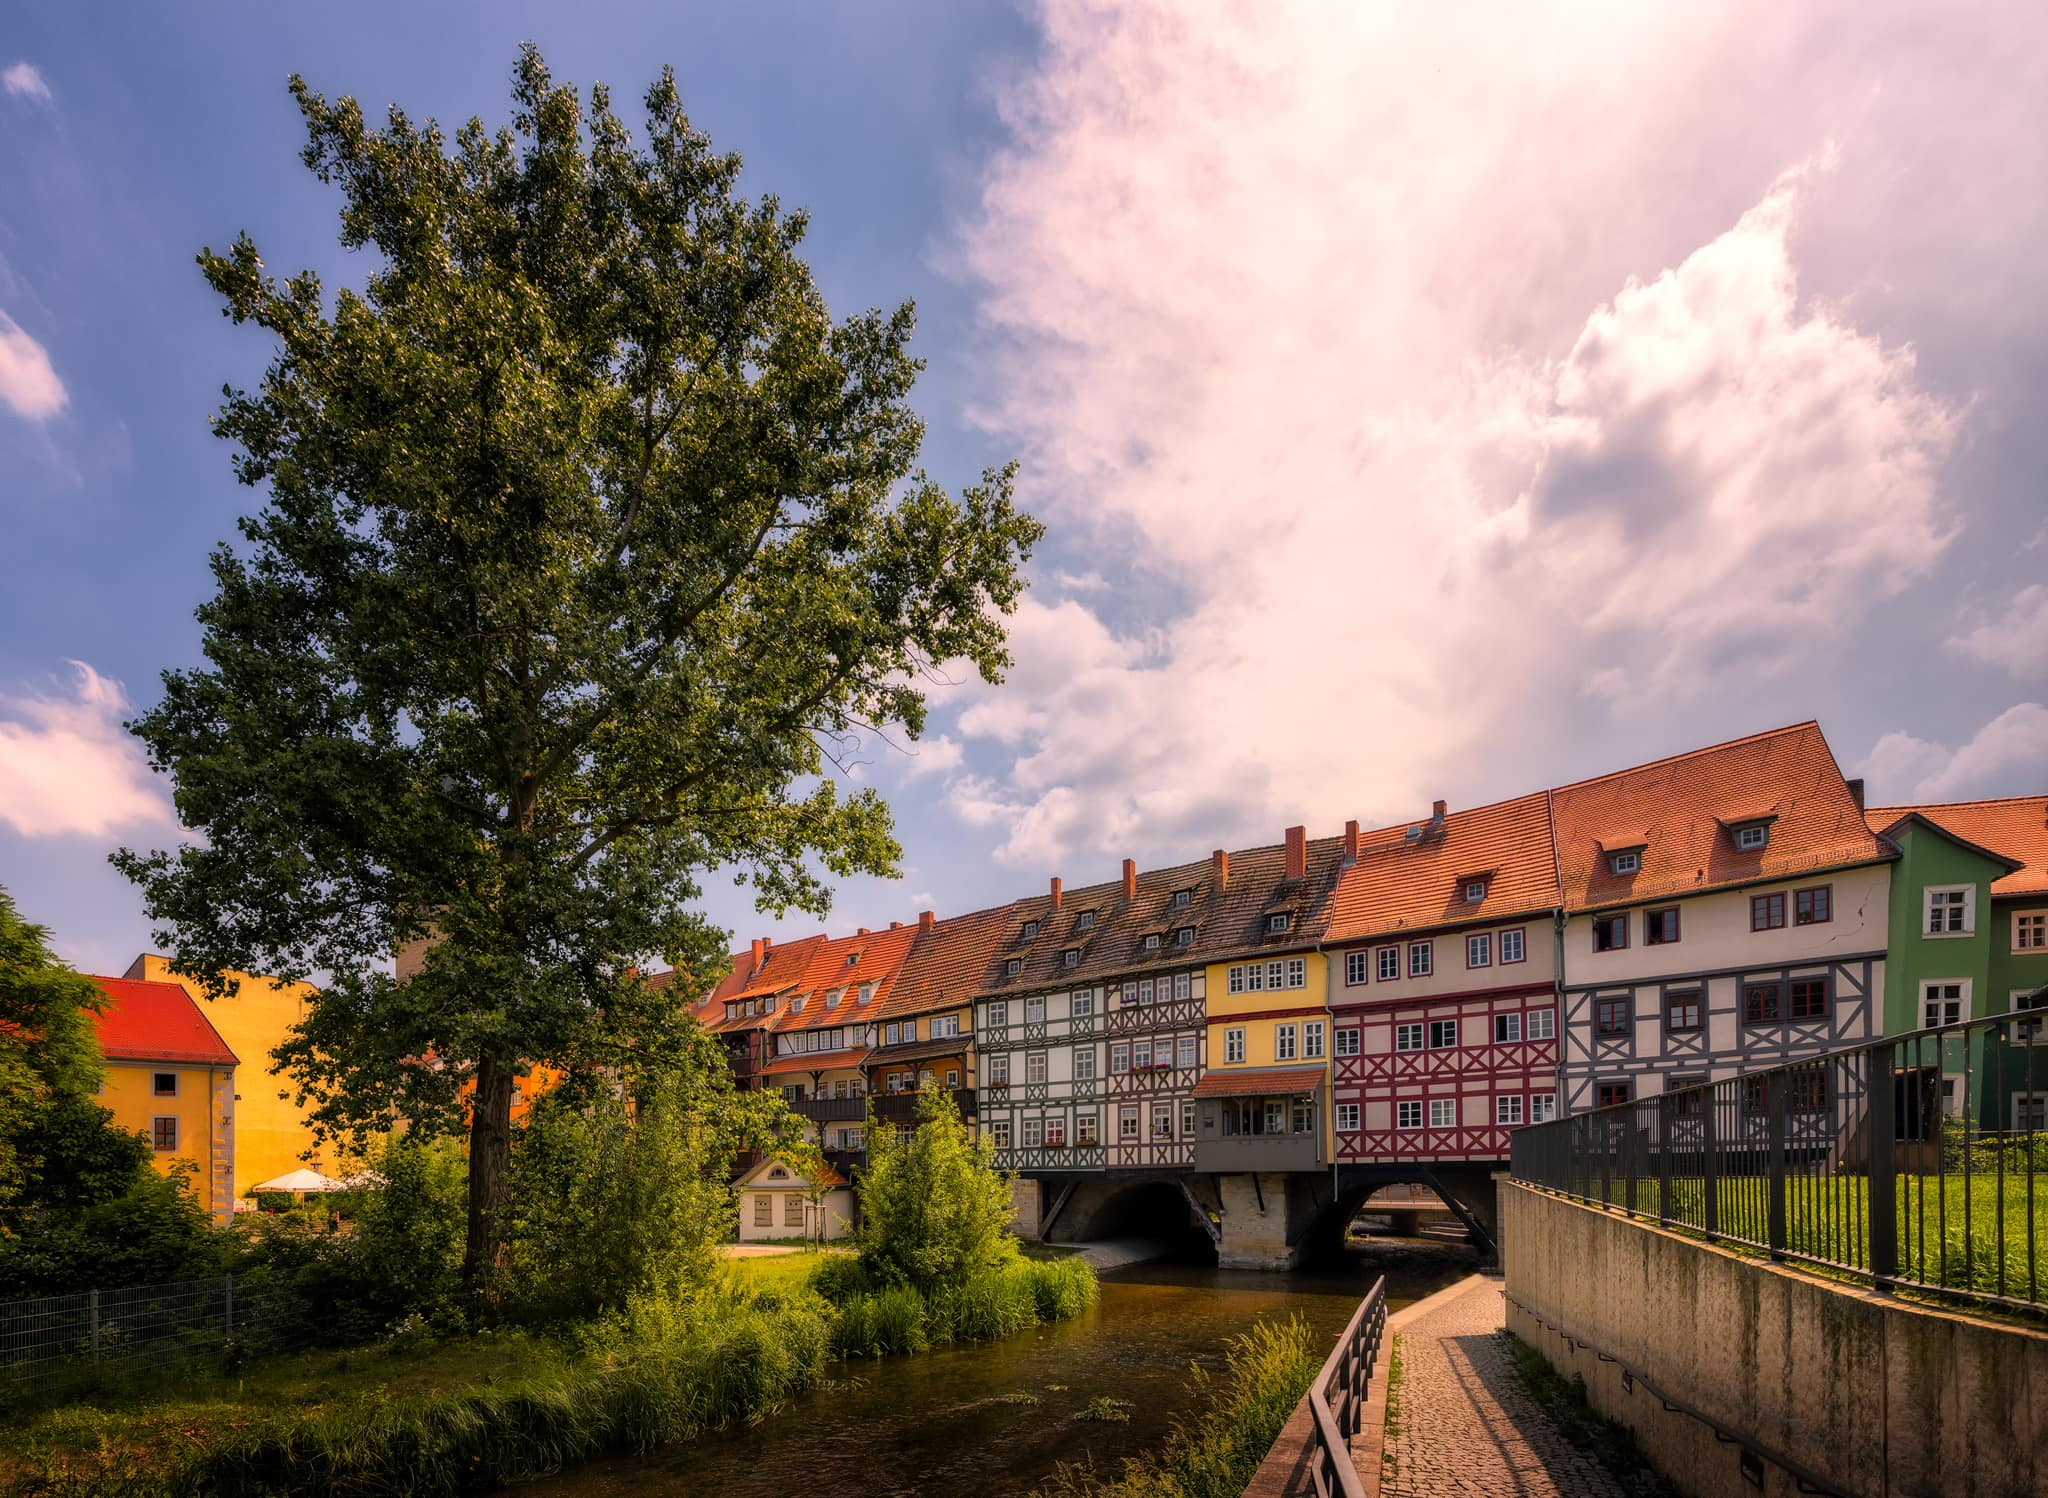 Krämerbrücke (Merchants Bridge) in Erfurt, Germany.